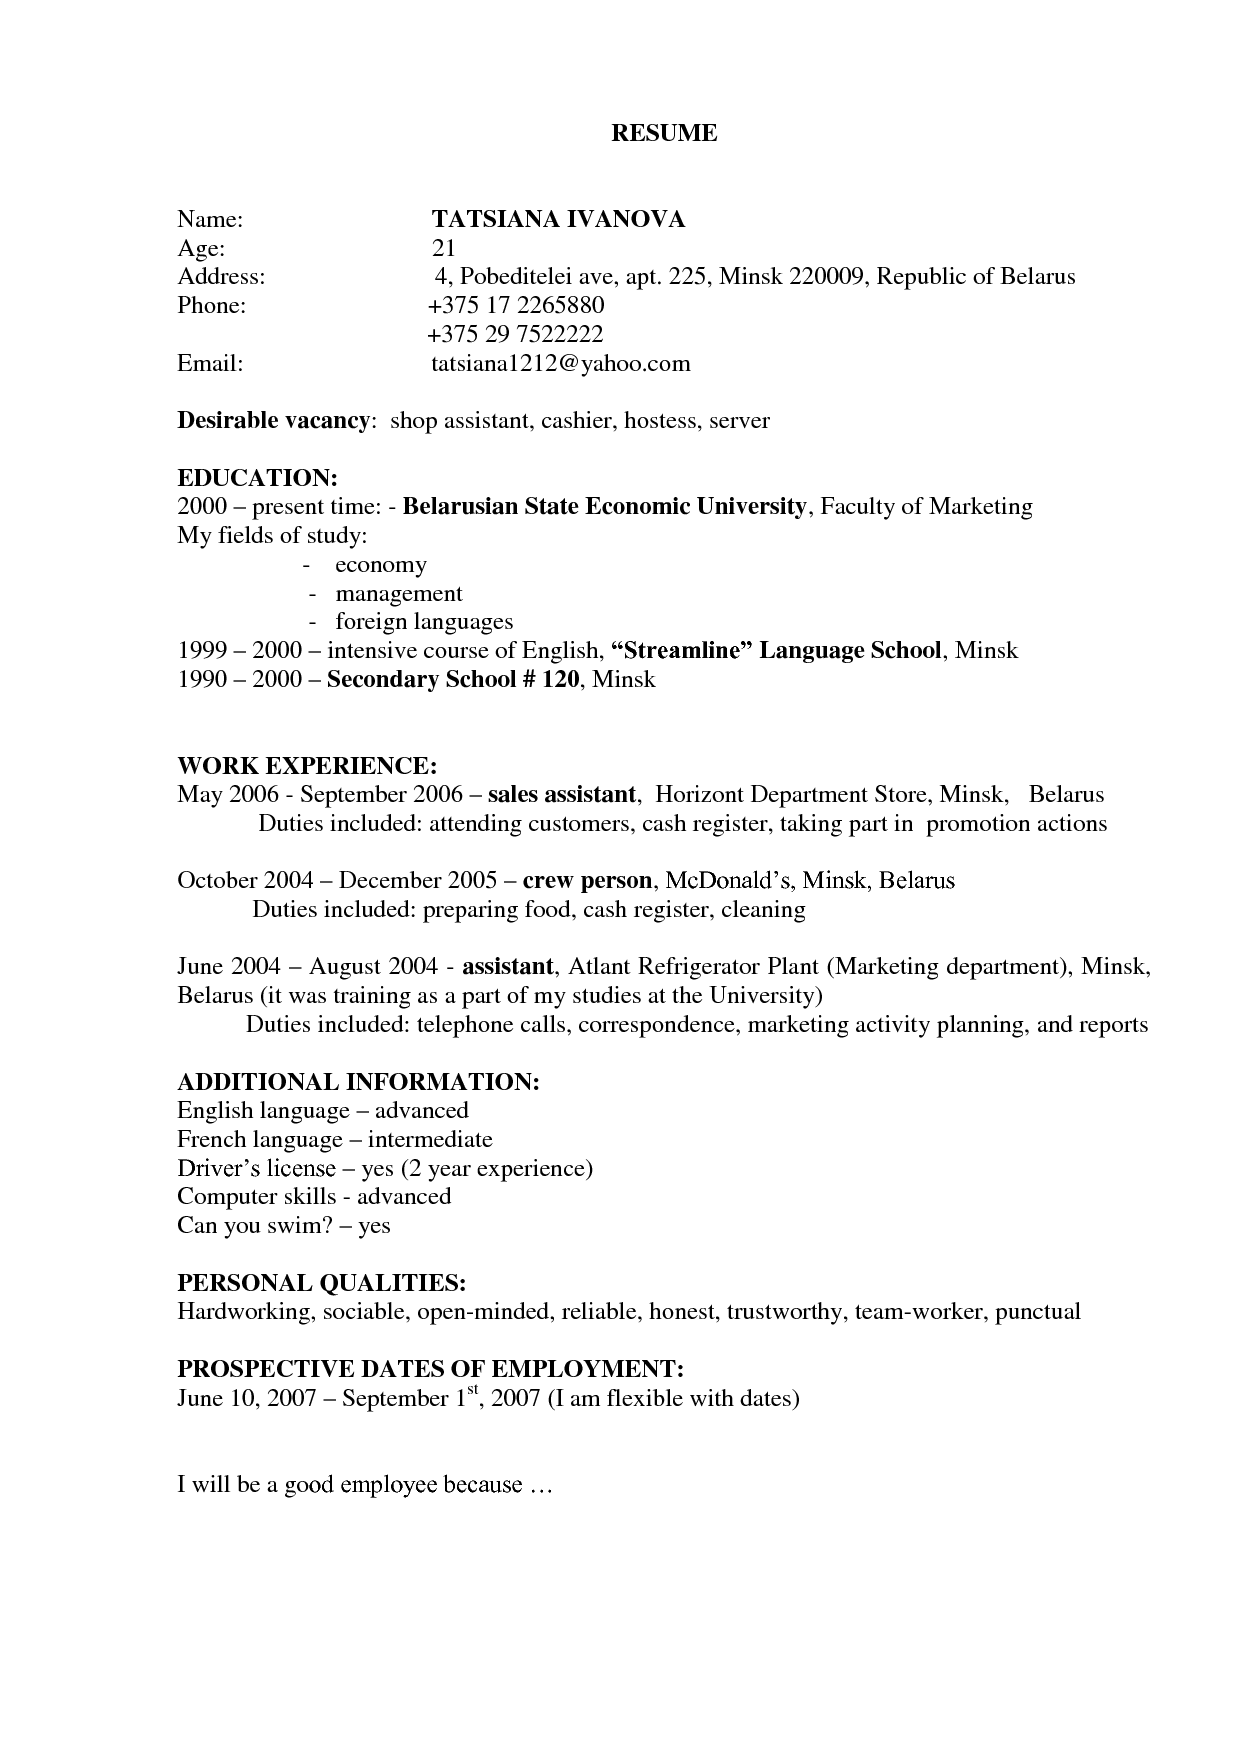 Cashier Description For Resume Cashier Position Resume Objective Cover Restaurant Resumes Job